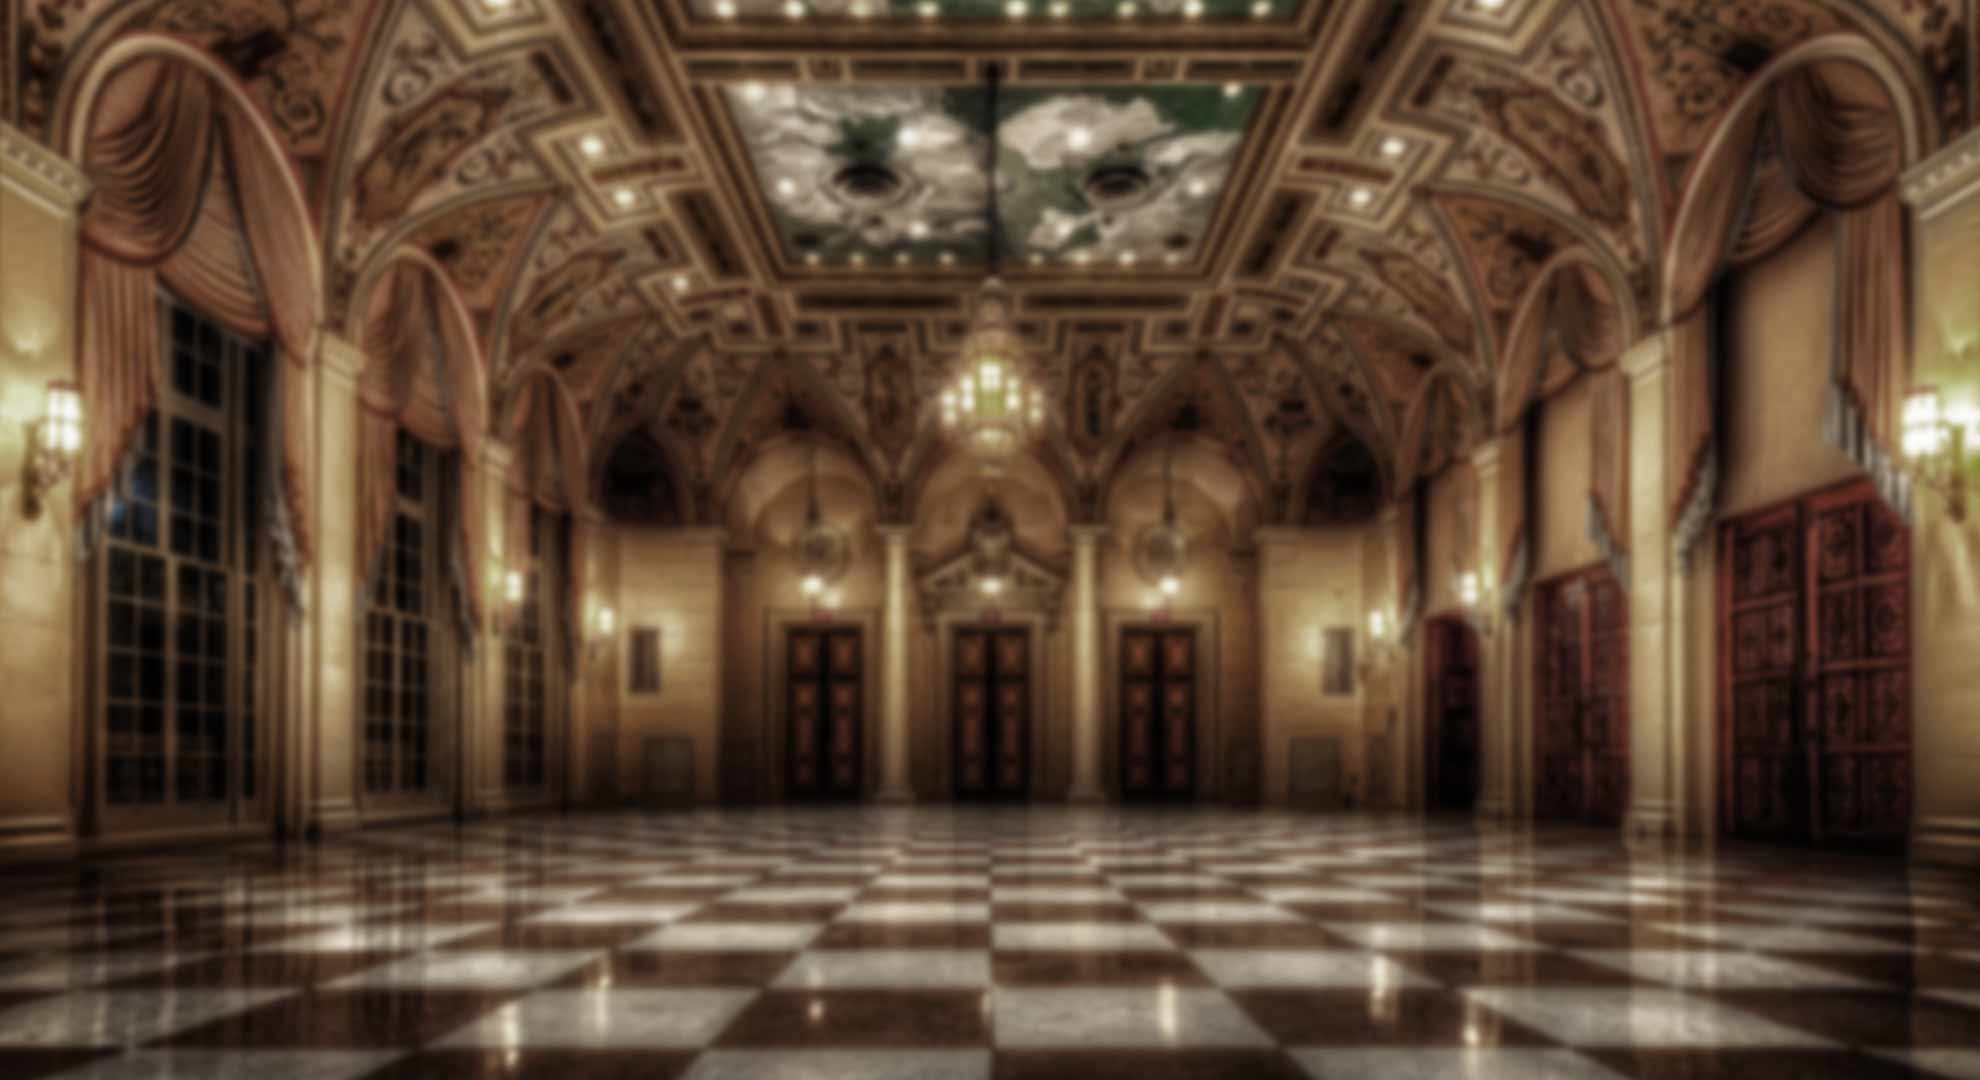 Ballroom Backgrounds posted by Sarah Simpson